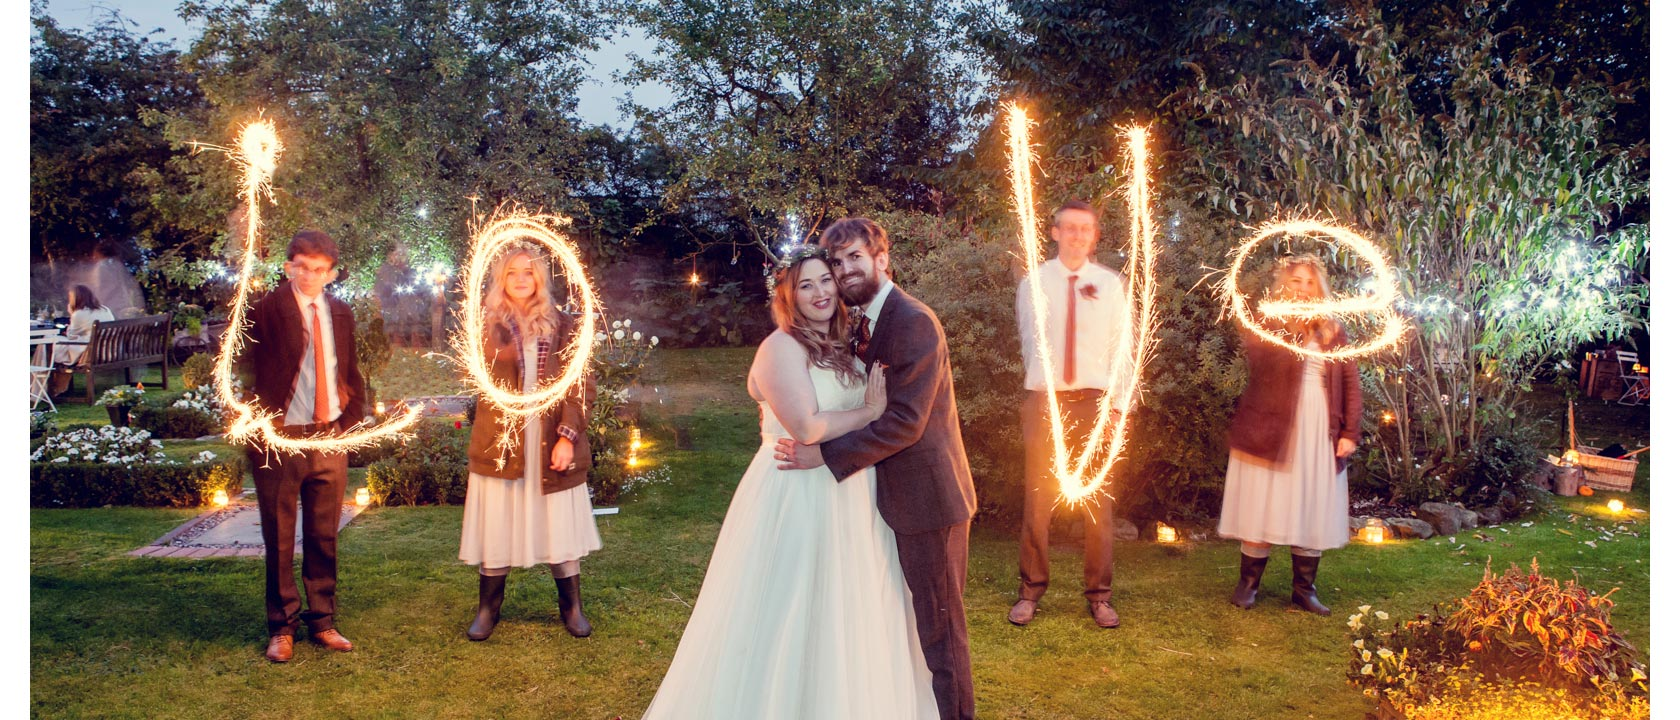 Reach Wedding Photography – Capturing what words cannot